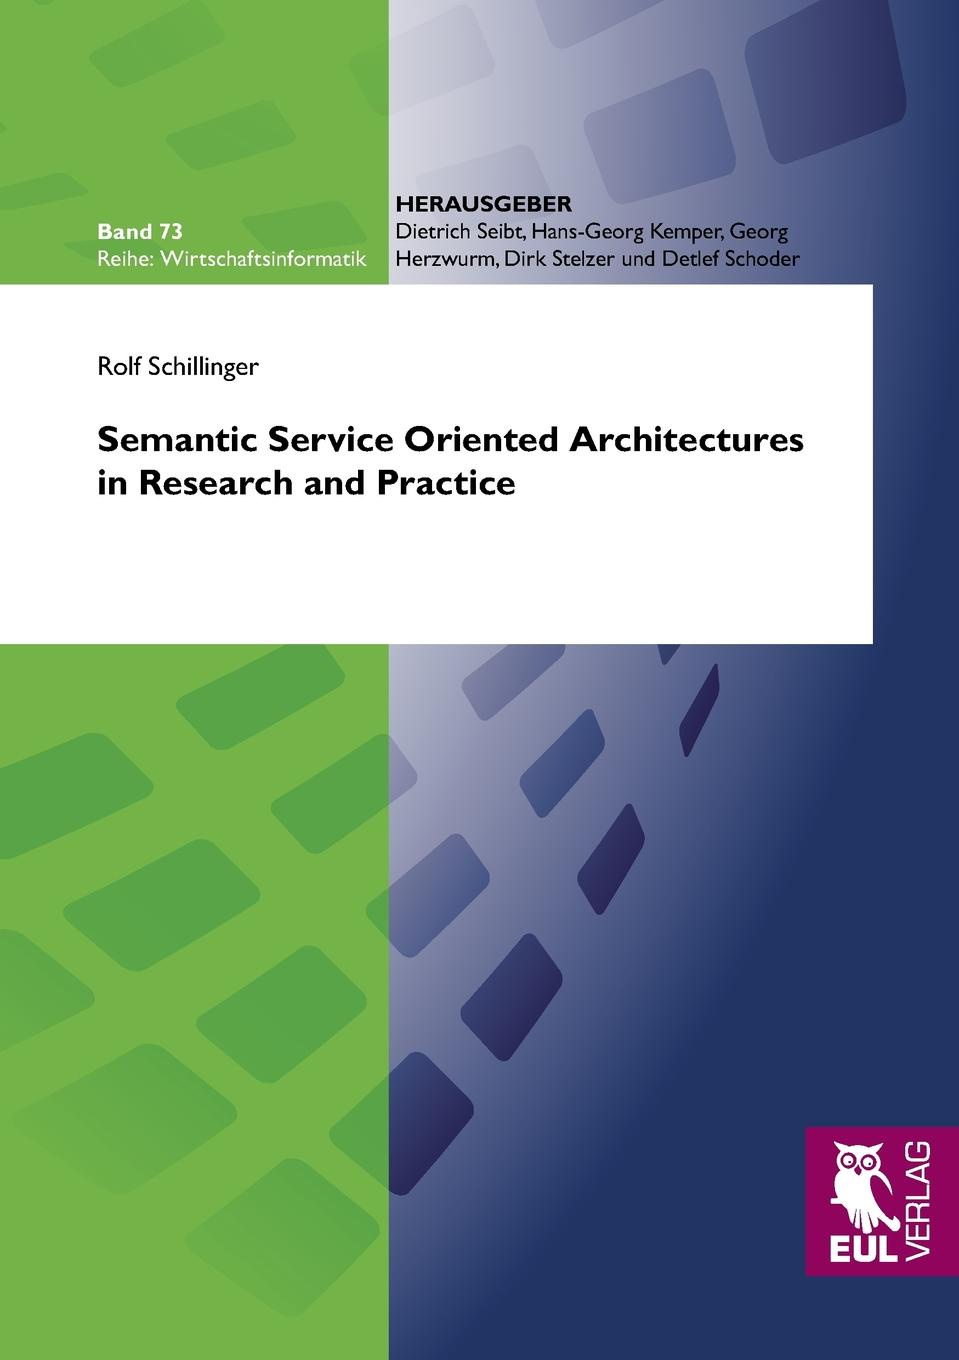 Semantic Service Oriented Architectures in Research and Practice Service Oriented Architectures (SOAs) have become one of the most...